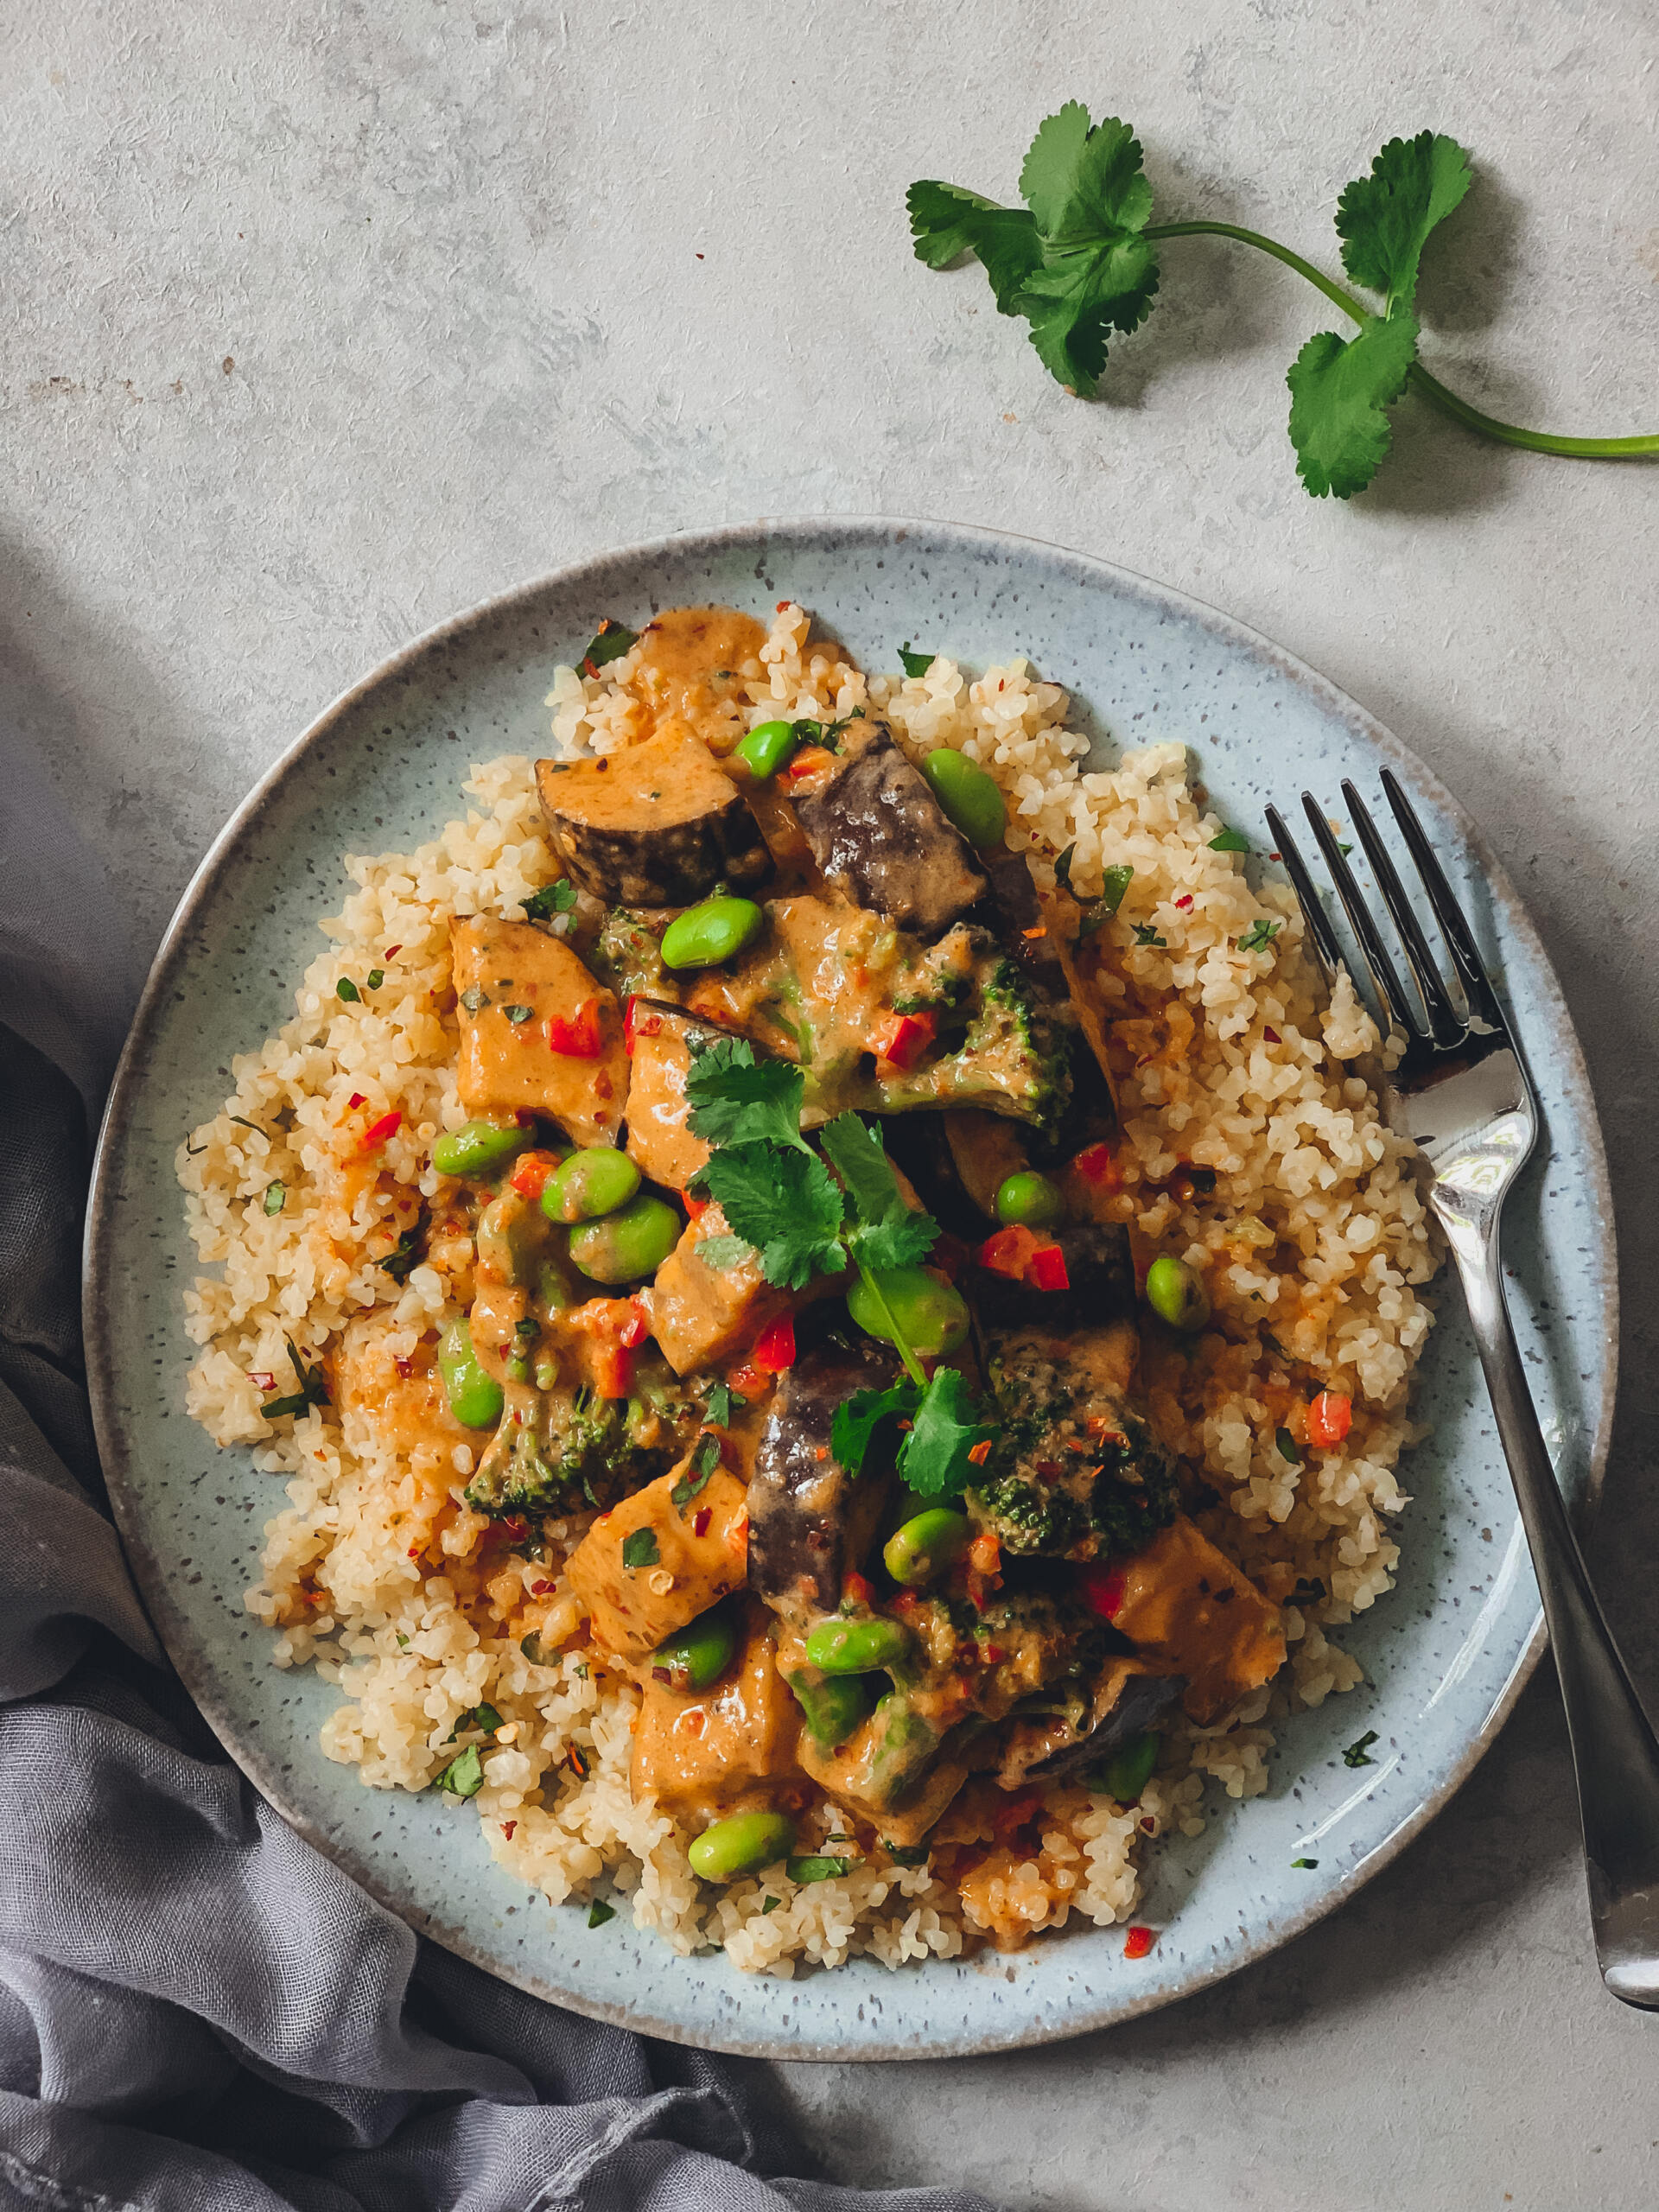 Aubergine and Broccoli Curry